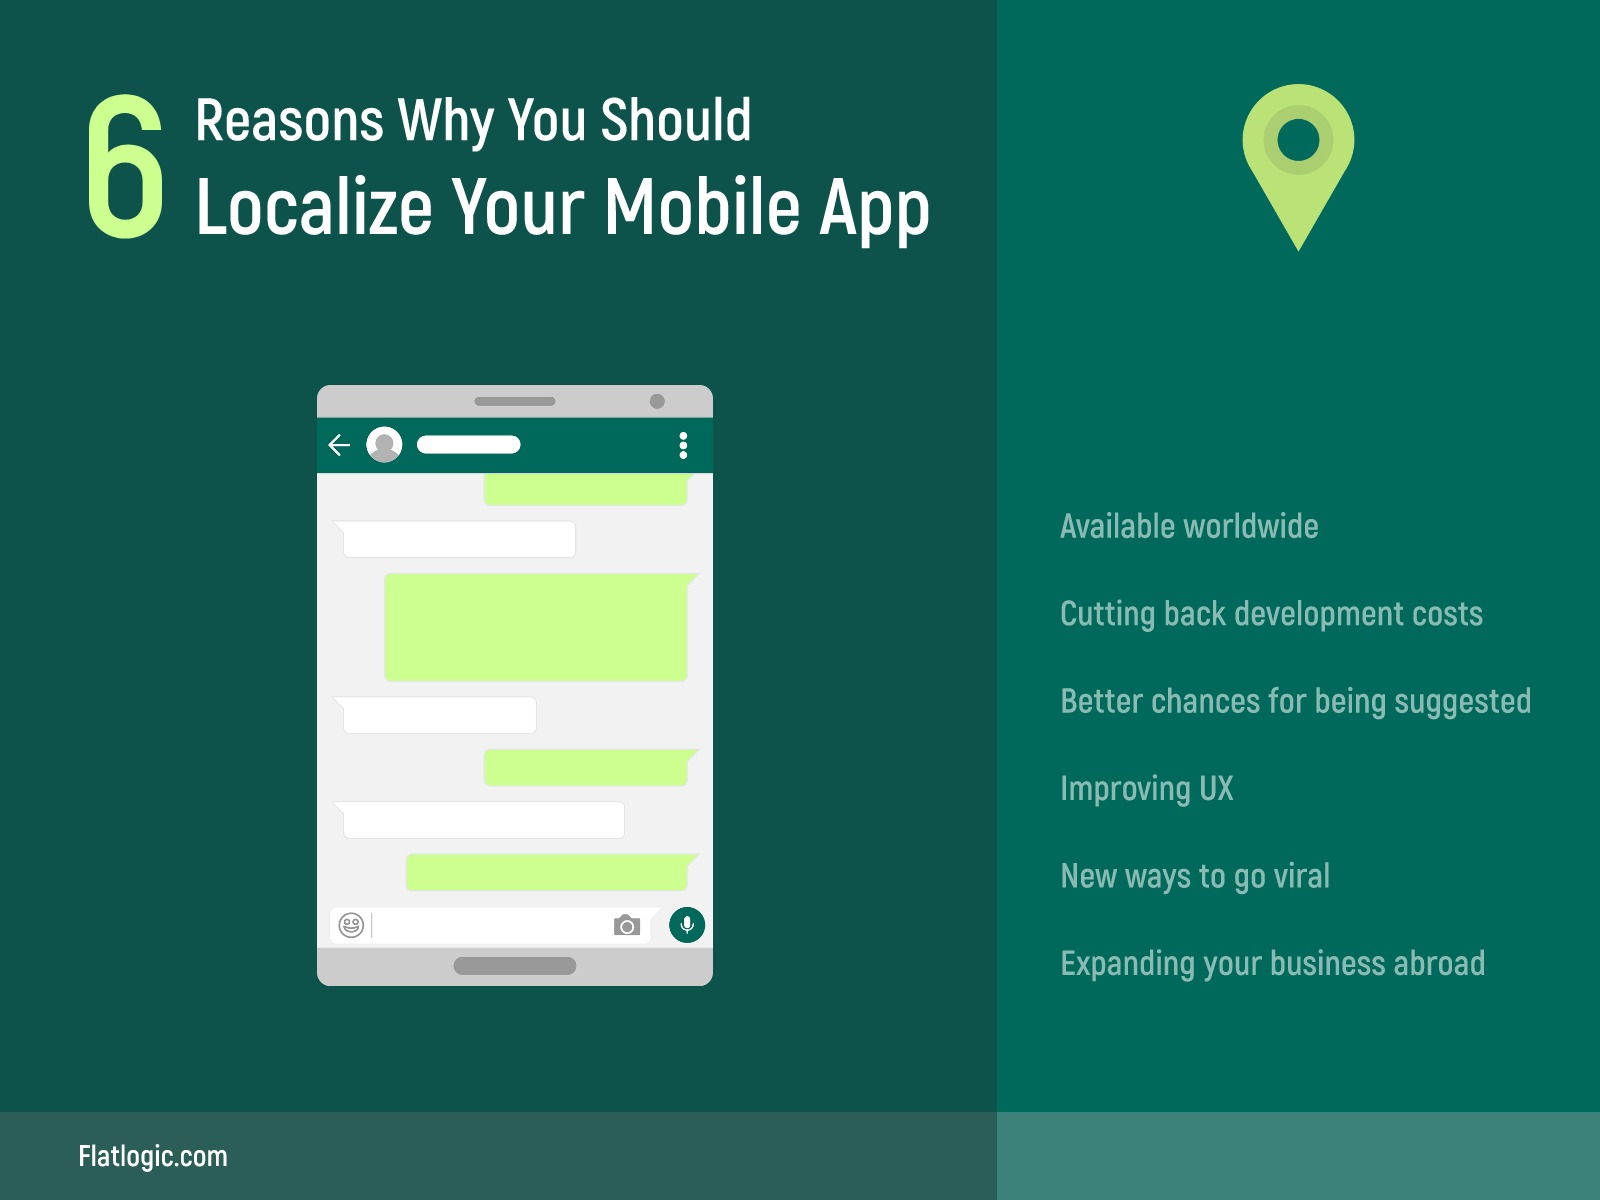 6 Reasons Why You Should Localize Your Mobile App